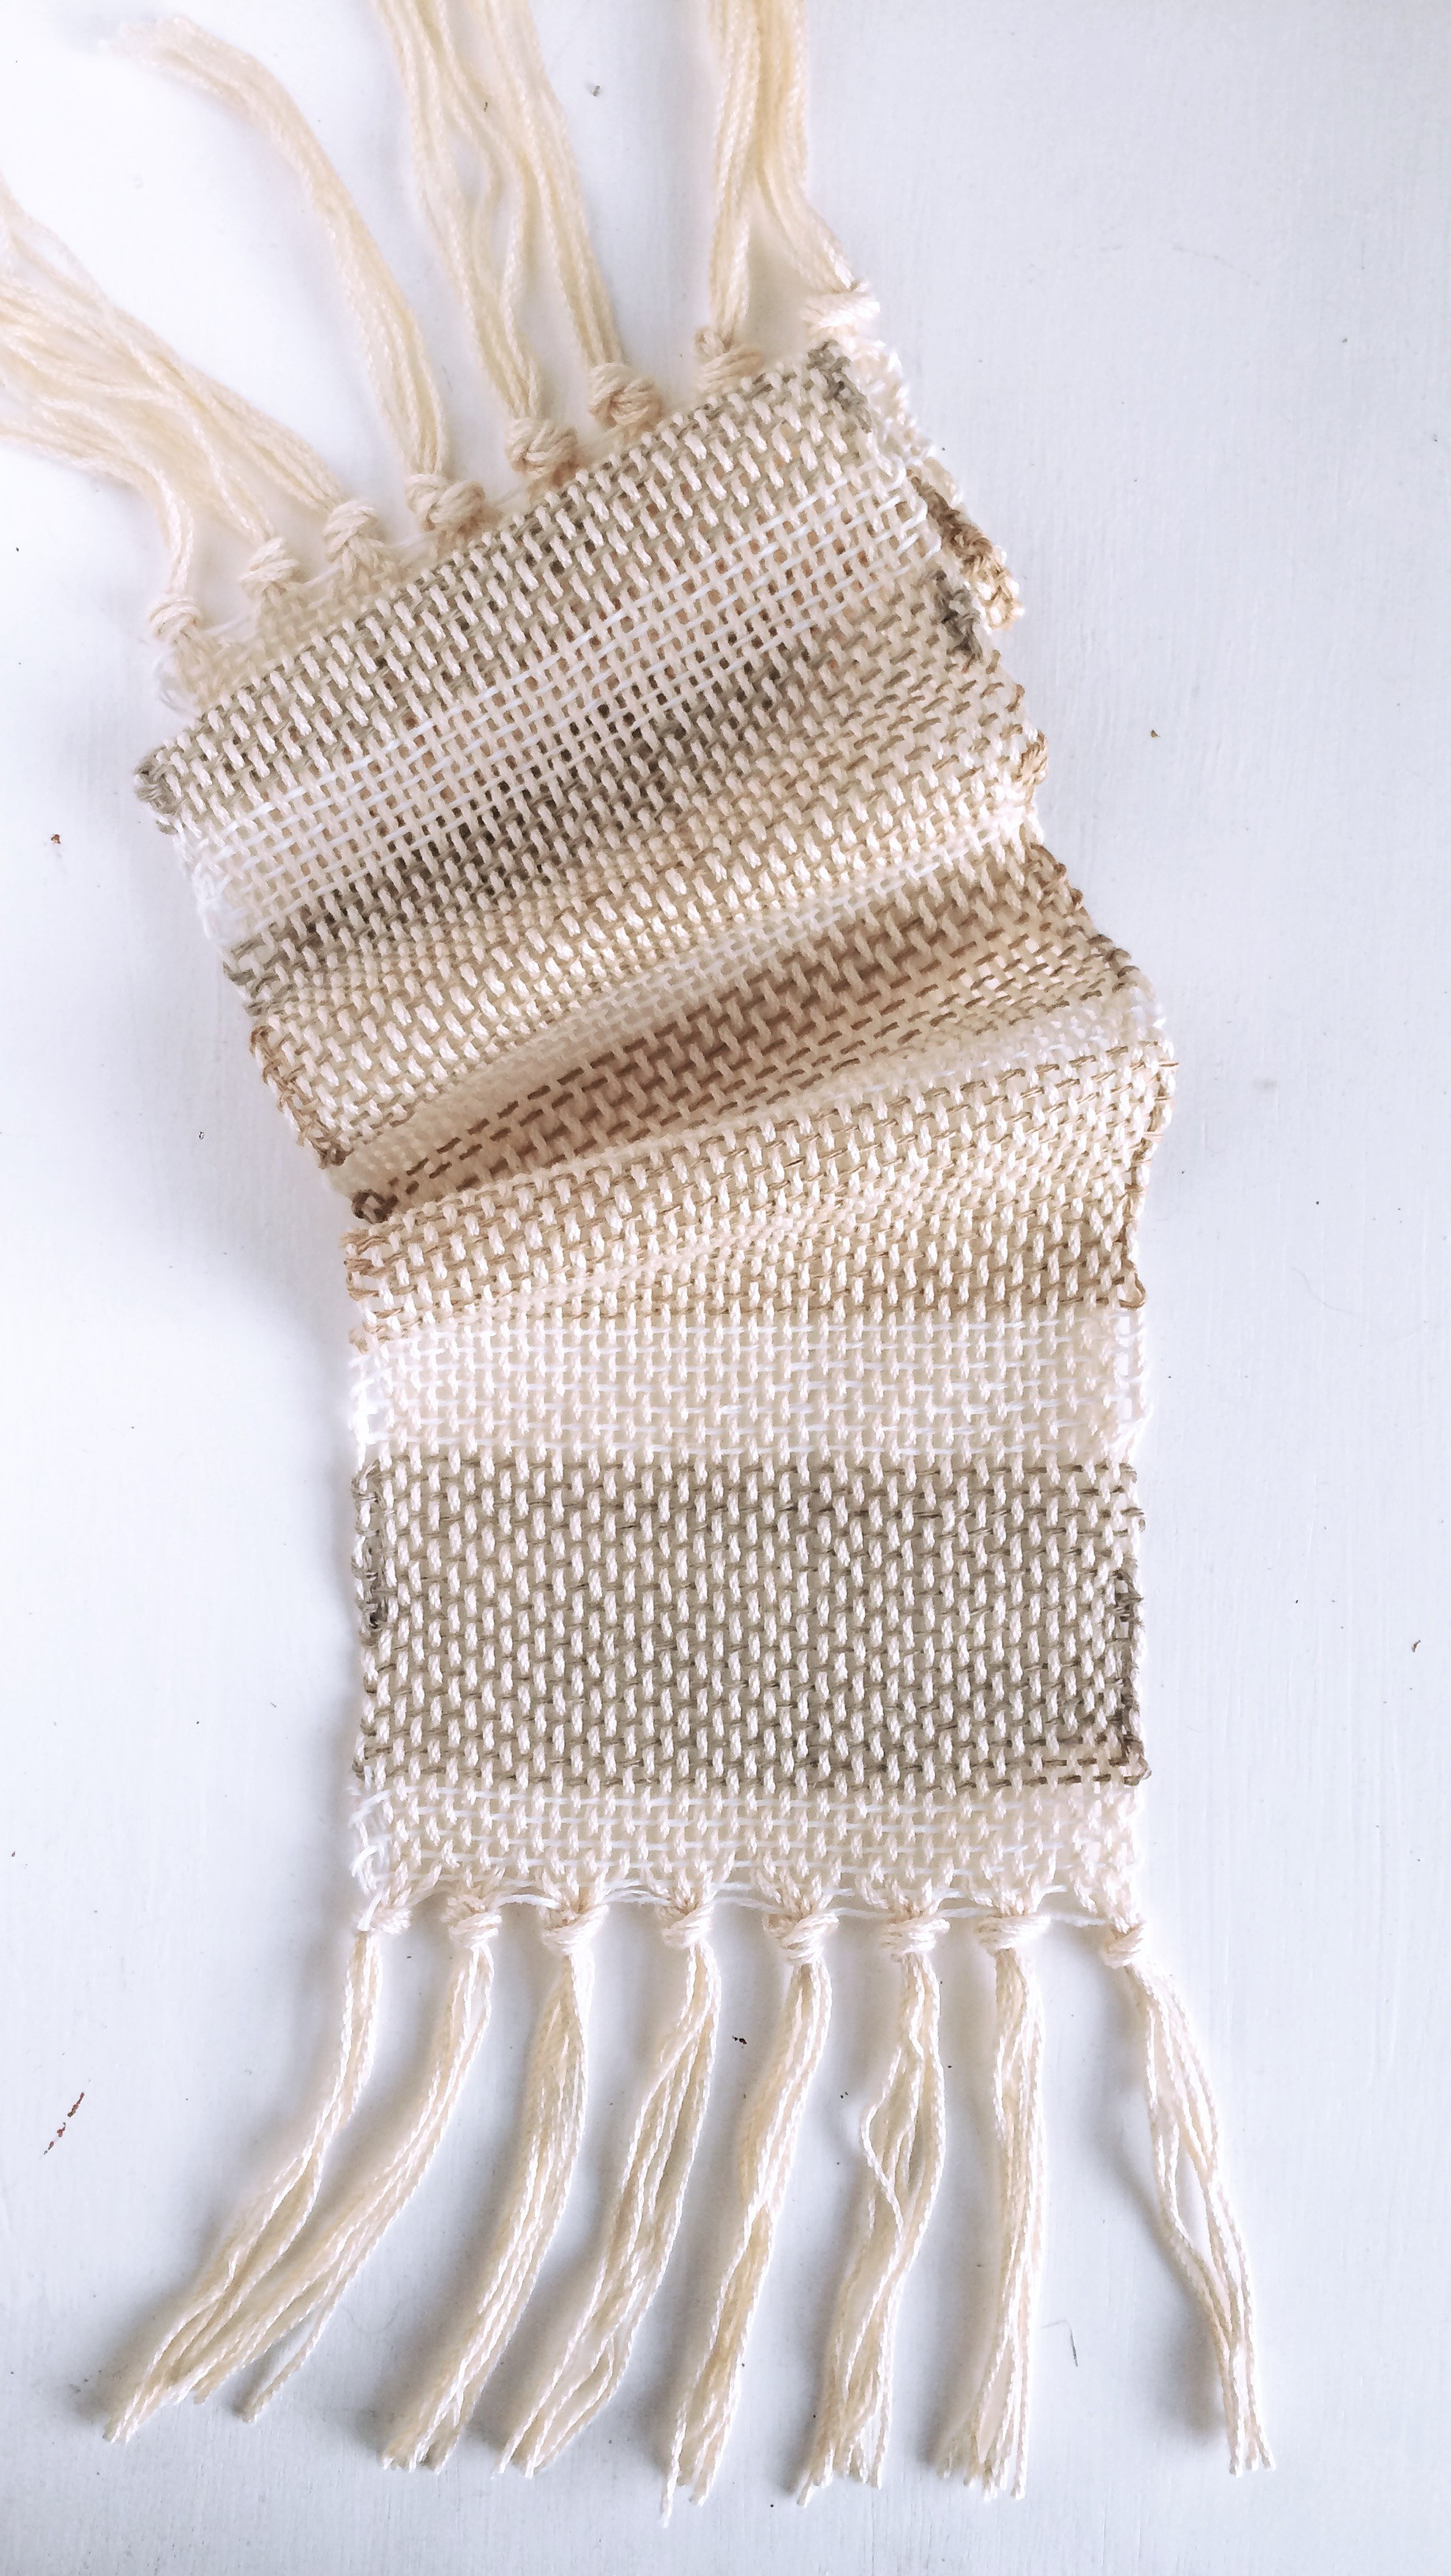 Just look at how gorgeous this is! Woven with linen and cotton.